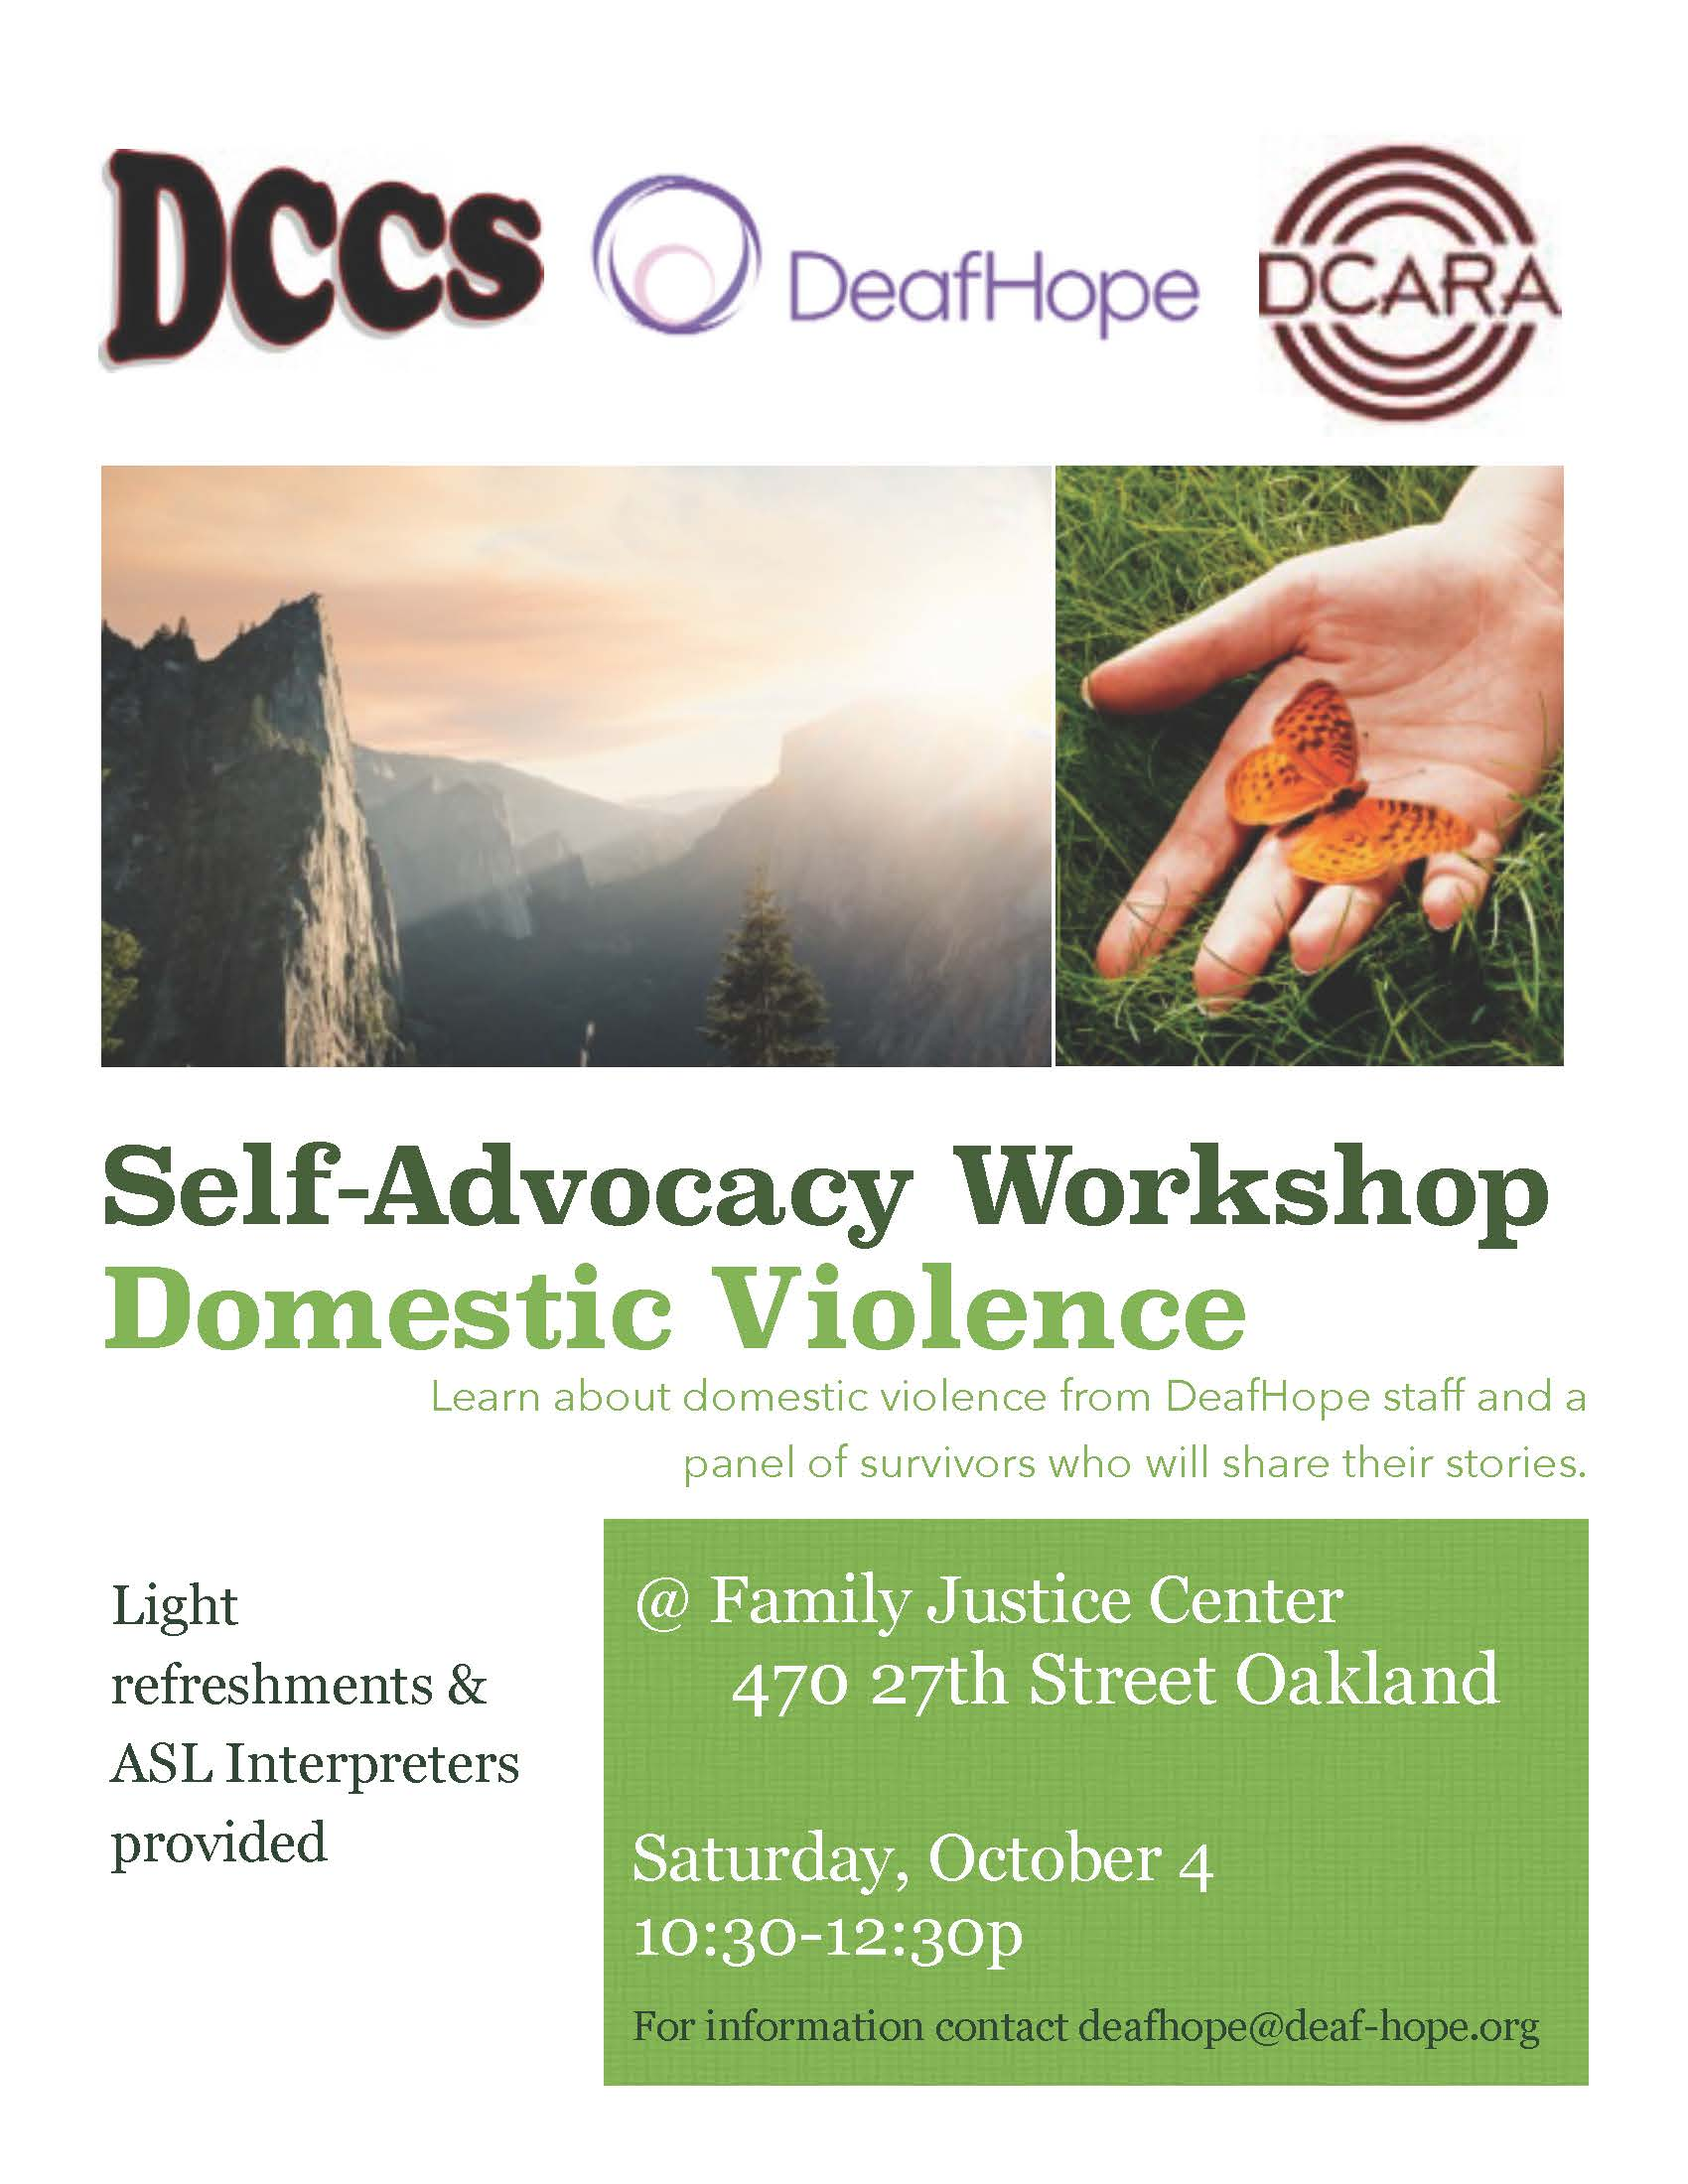 DV workshop flyer